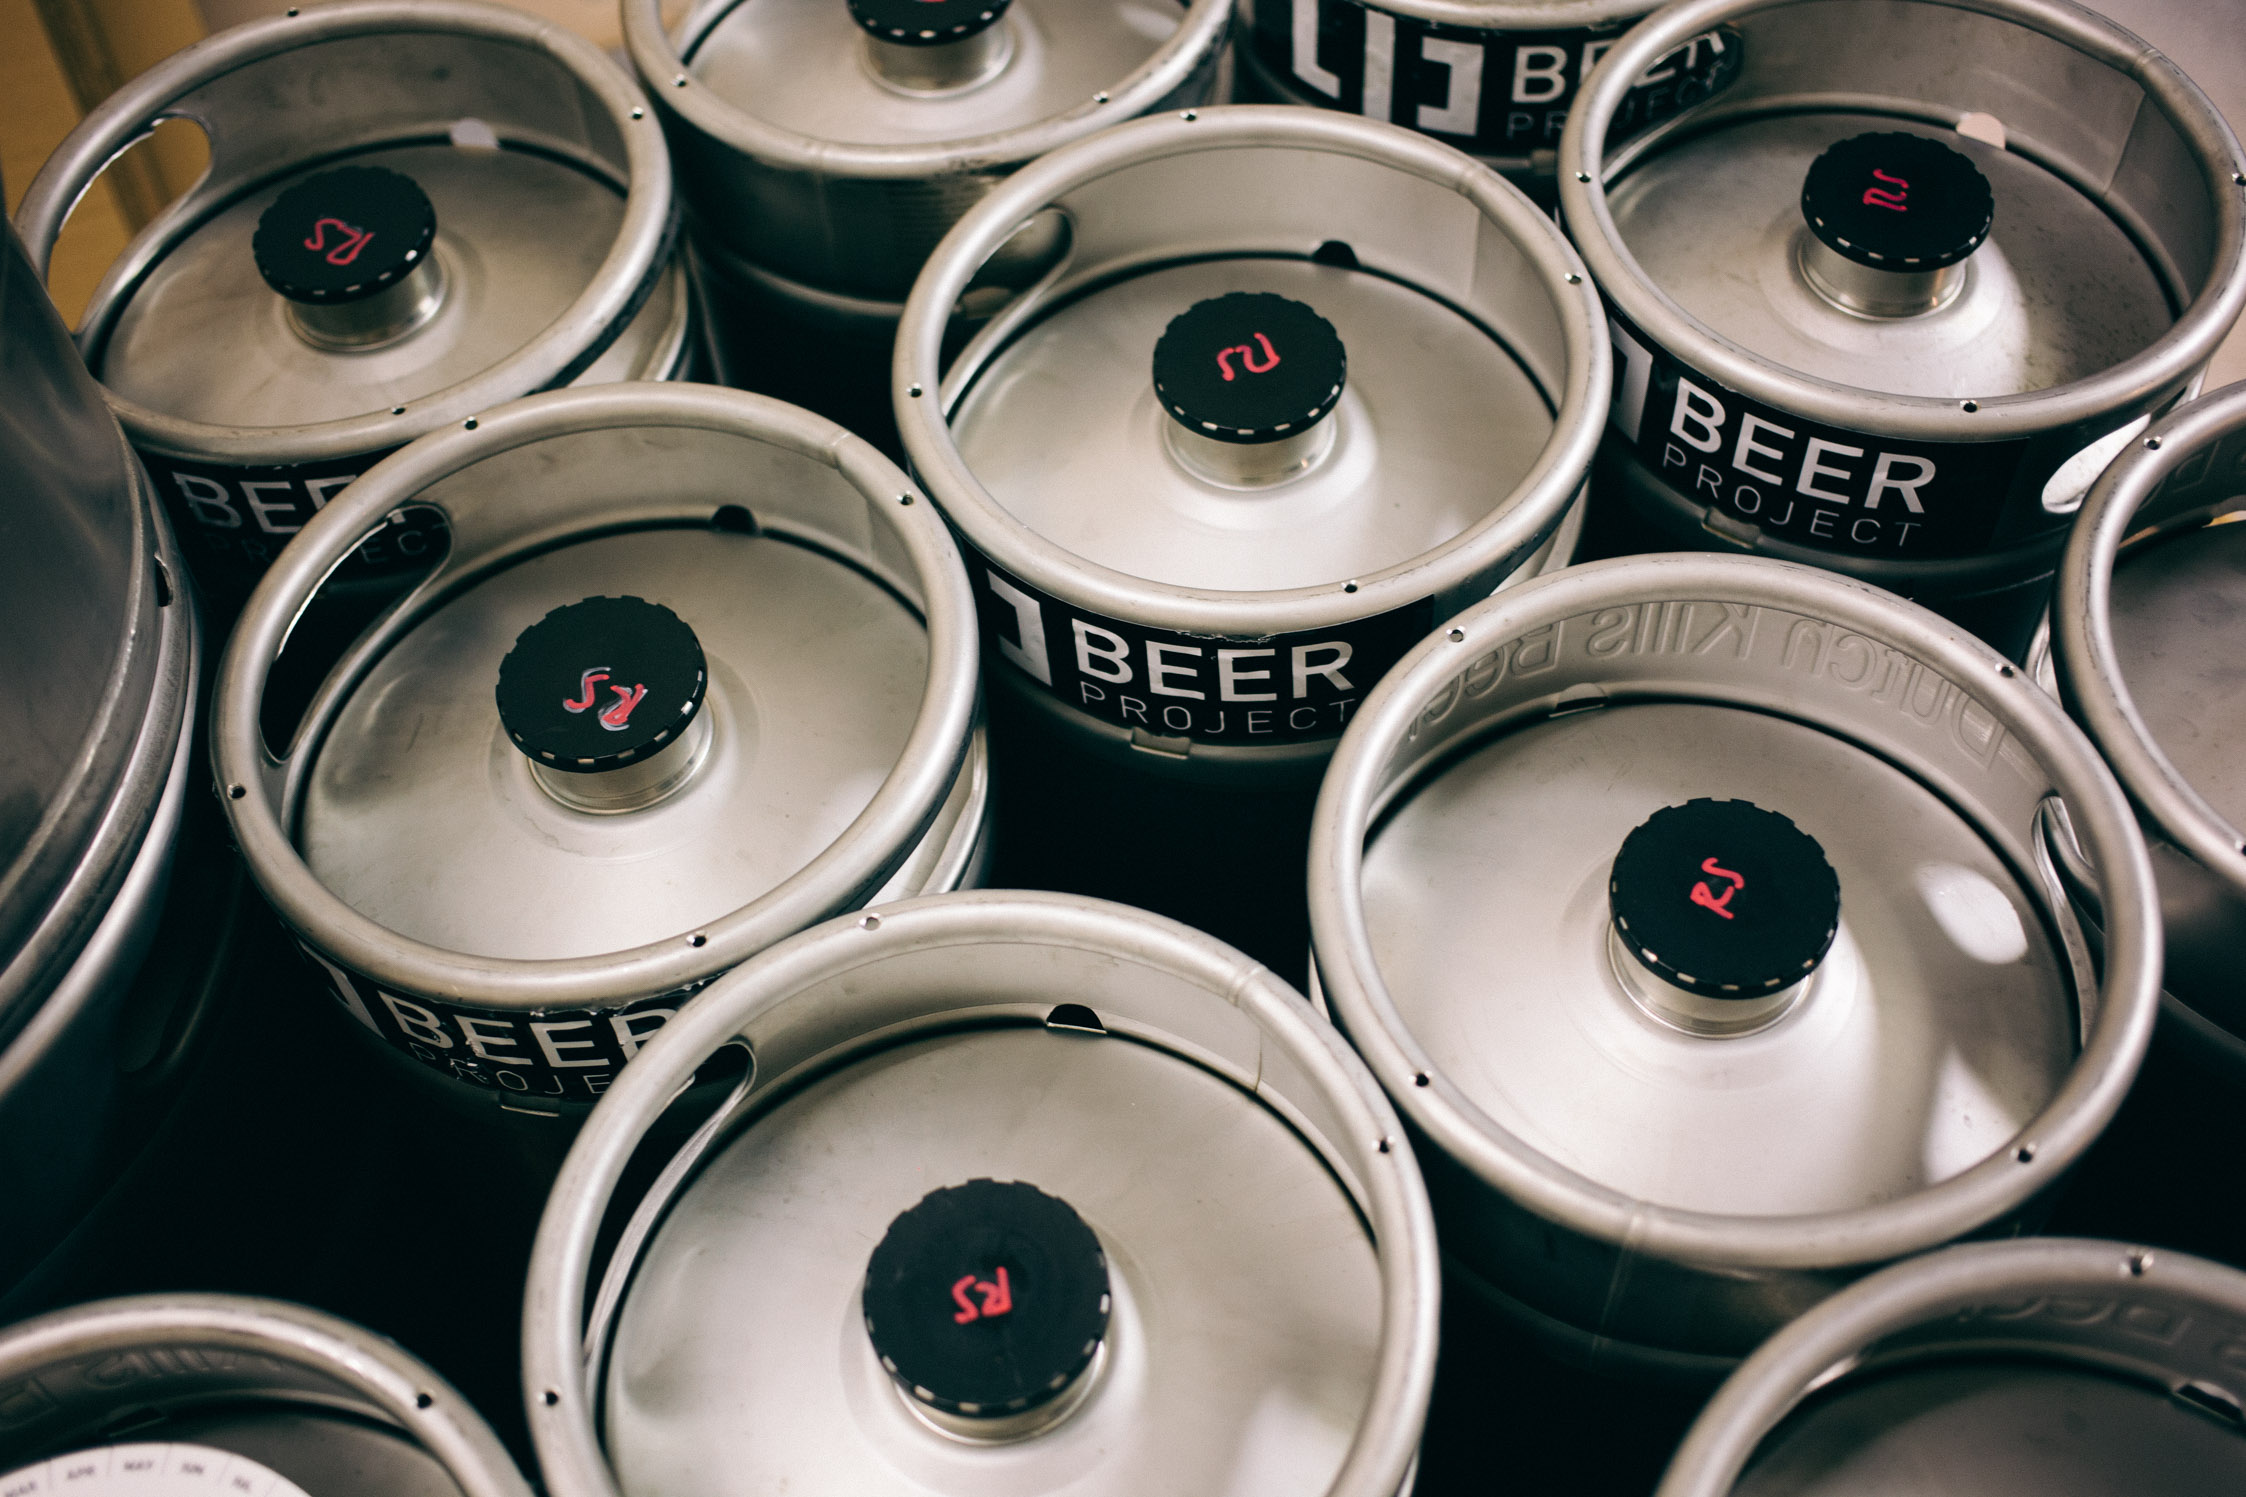 LIC Beer Project kegs